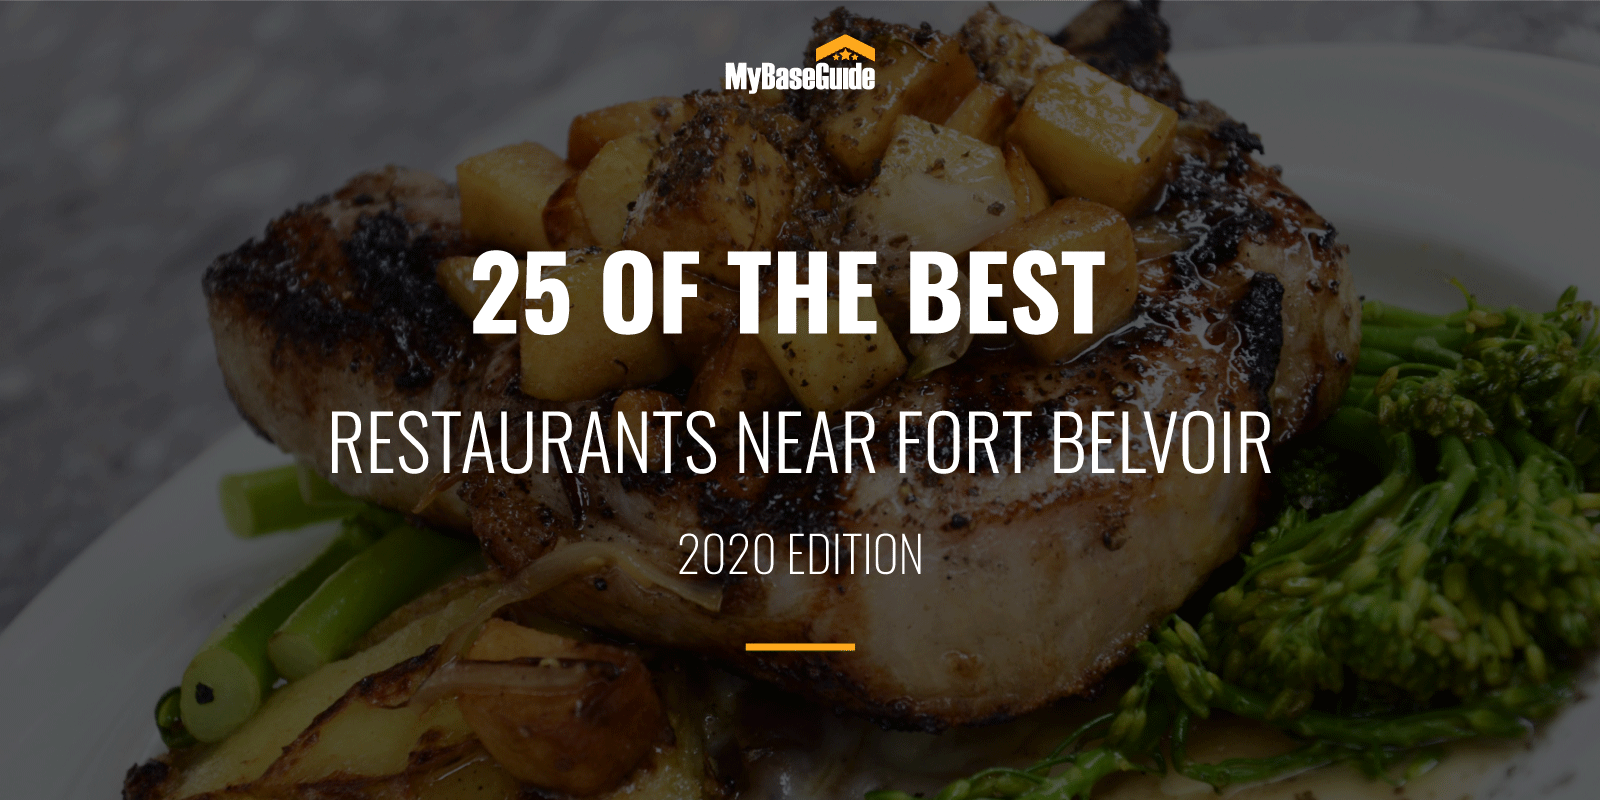 25 of the Best Restaurants Near Fort Belvoir